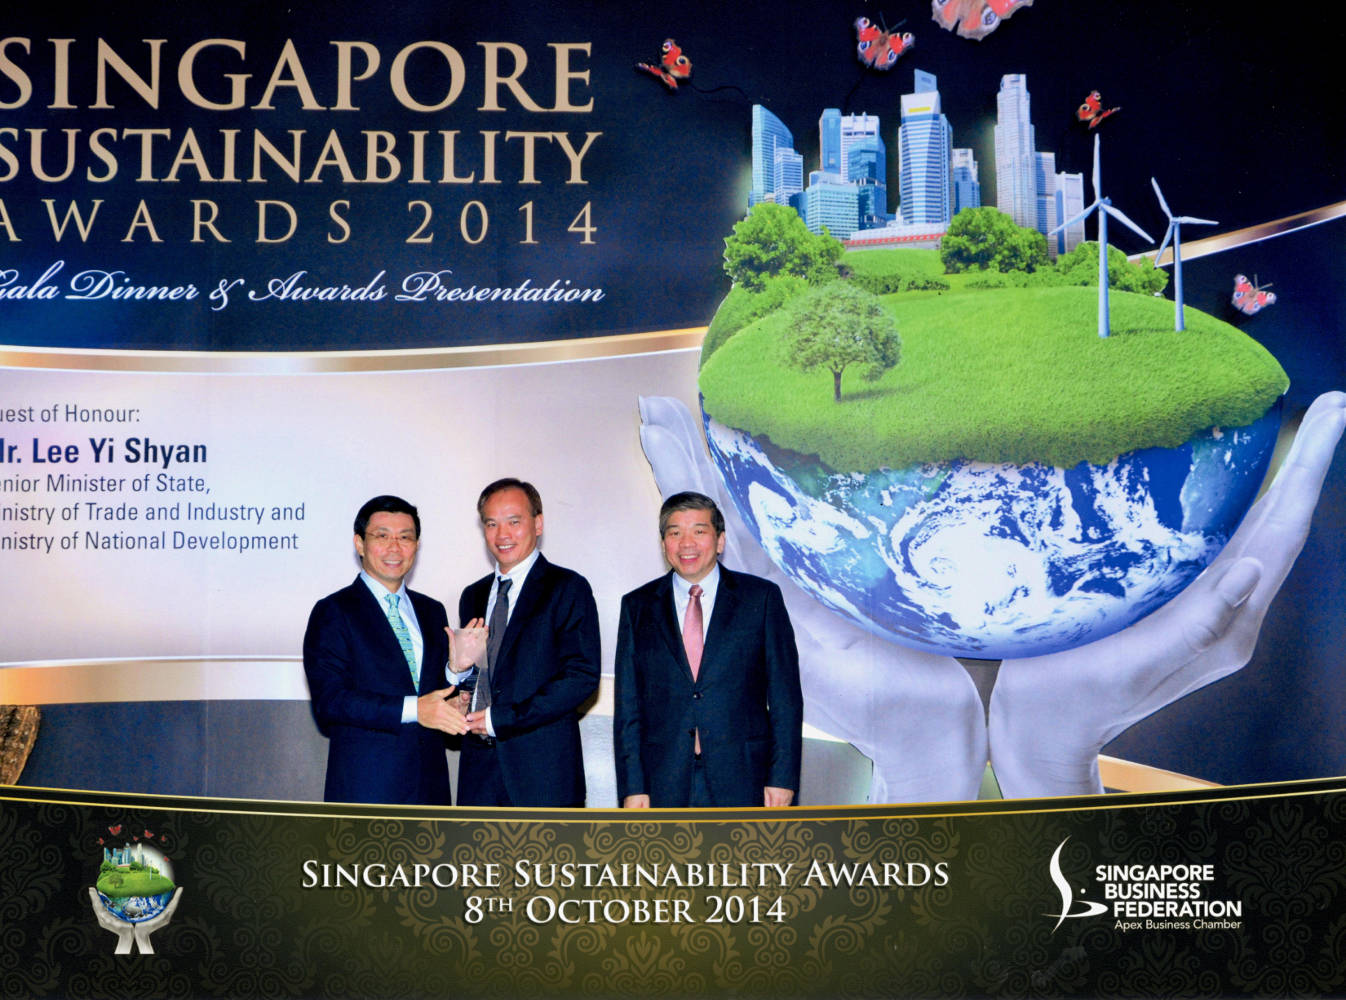 Mr Jack Ng receiving the Green Technology Award Top Honour